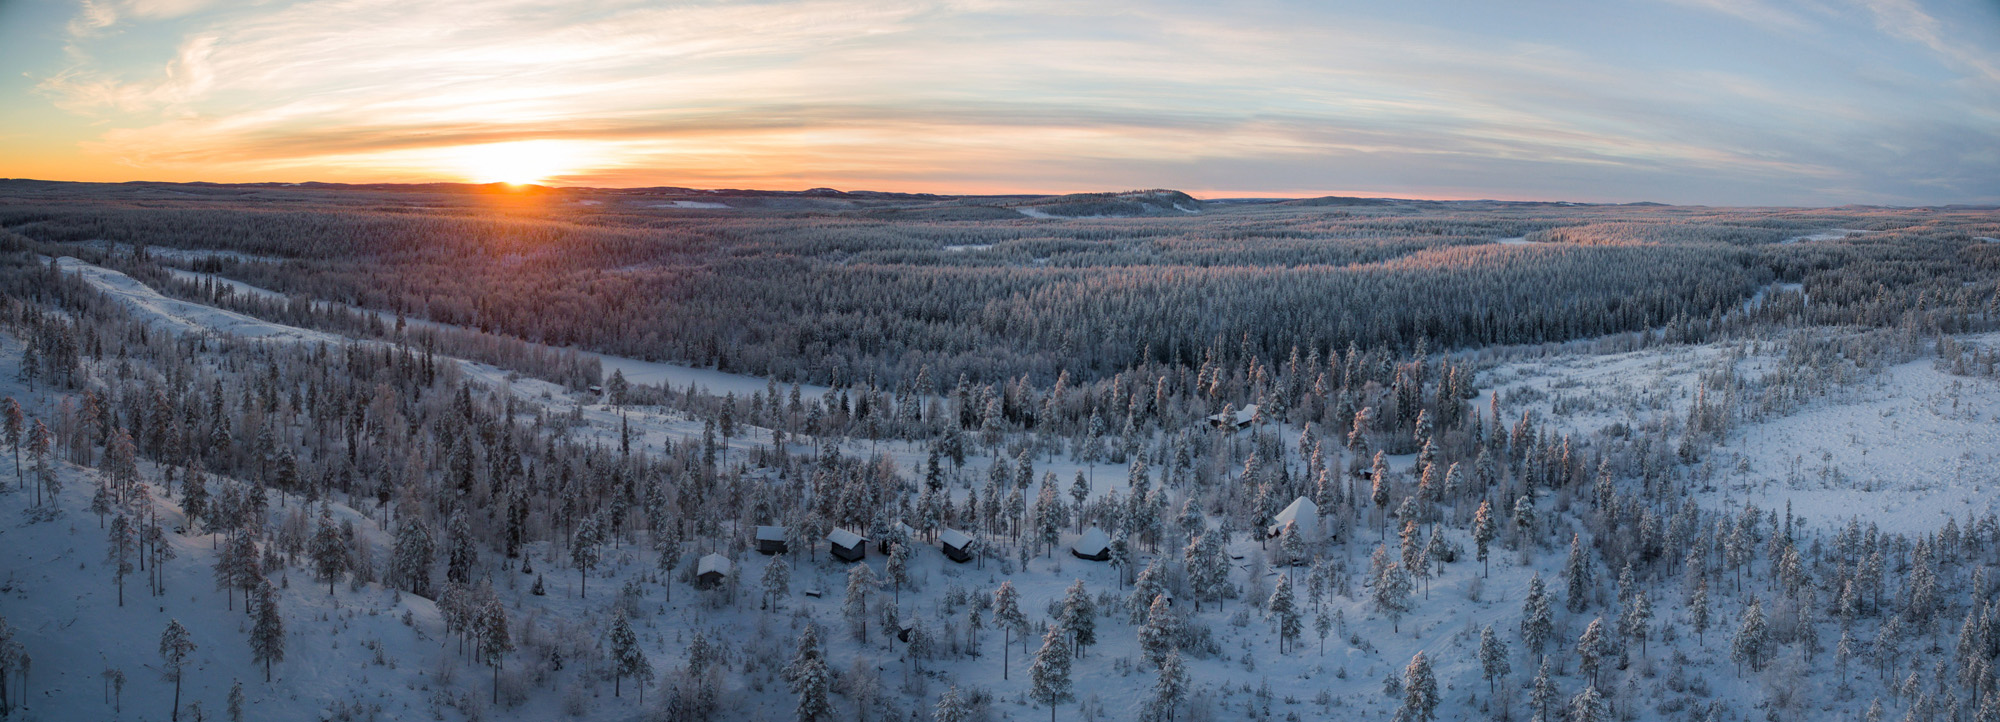 Svansele Wilderness Camp Winter aerial 01